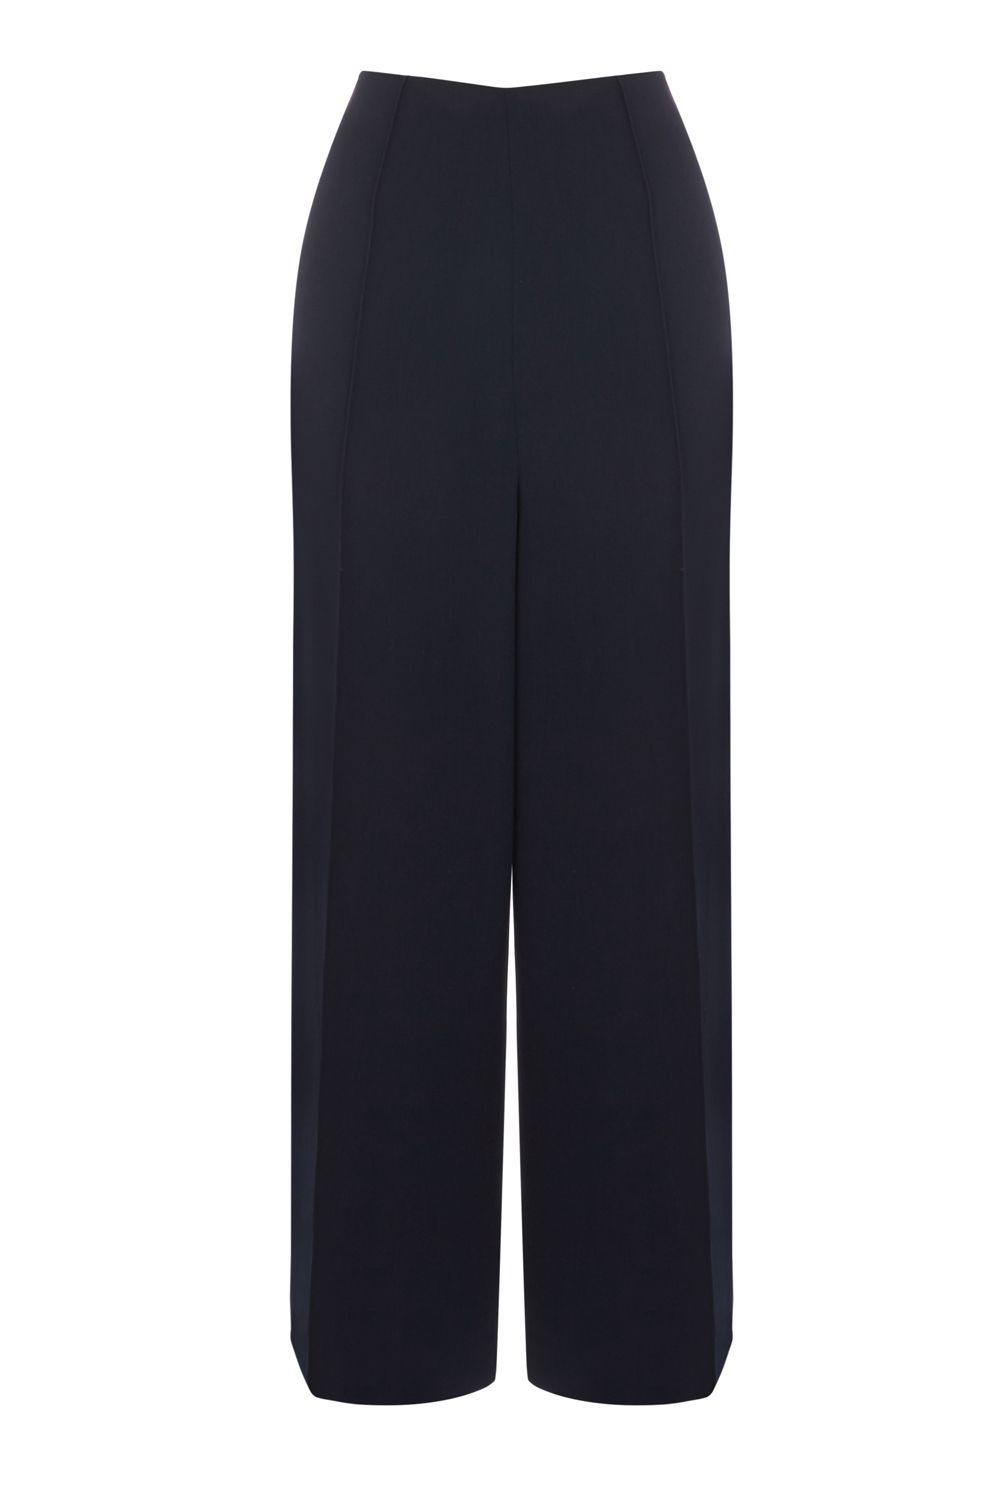 Warehouse Pintuck Culottes, Blue